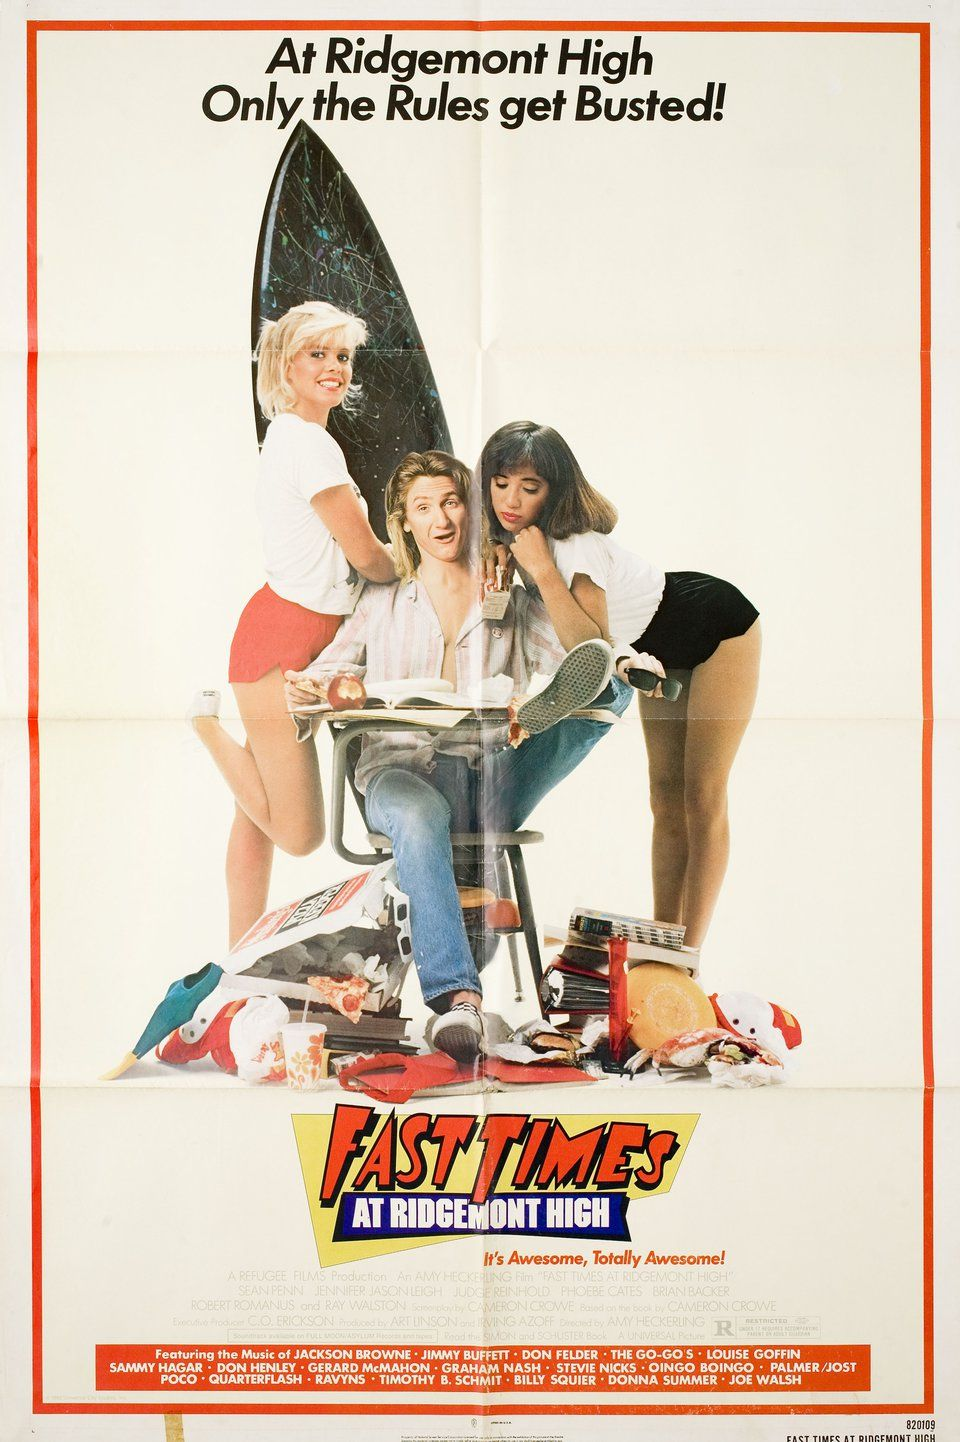 Fast times at ridgemont high 1982 us one sheet poster